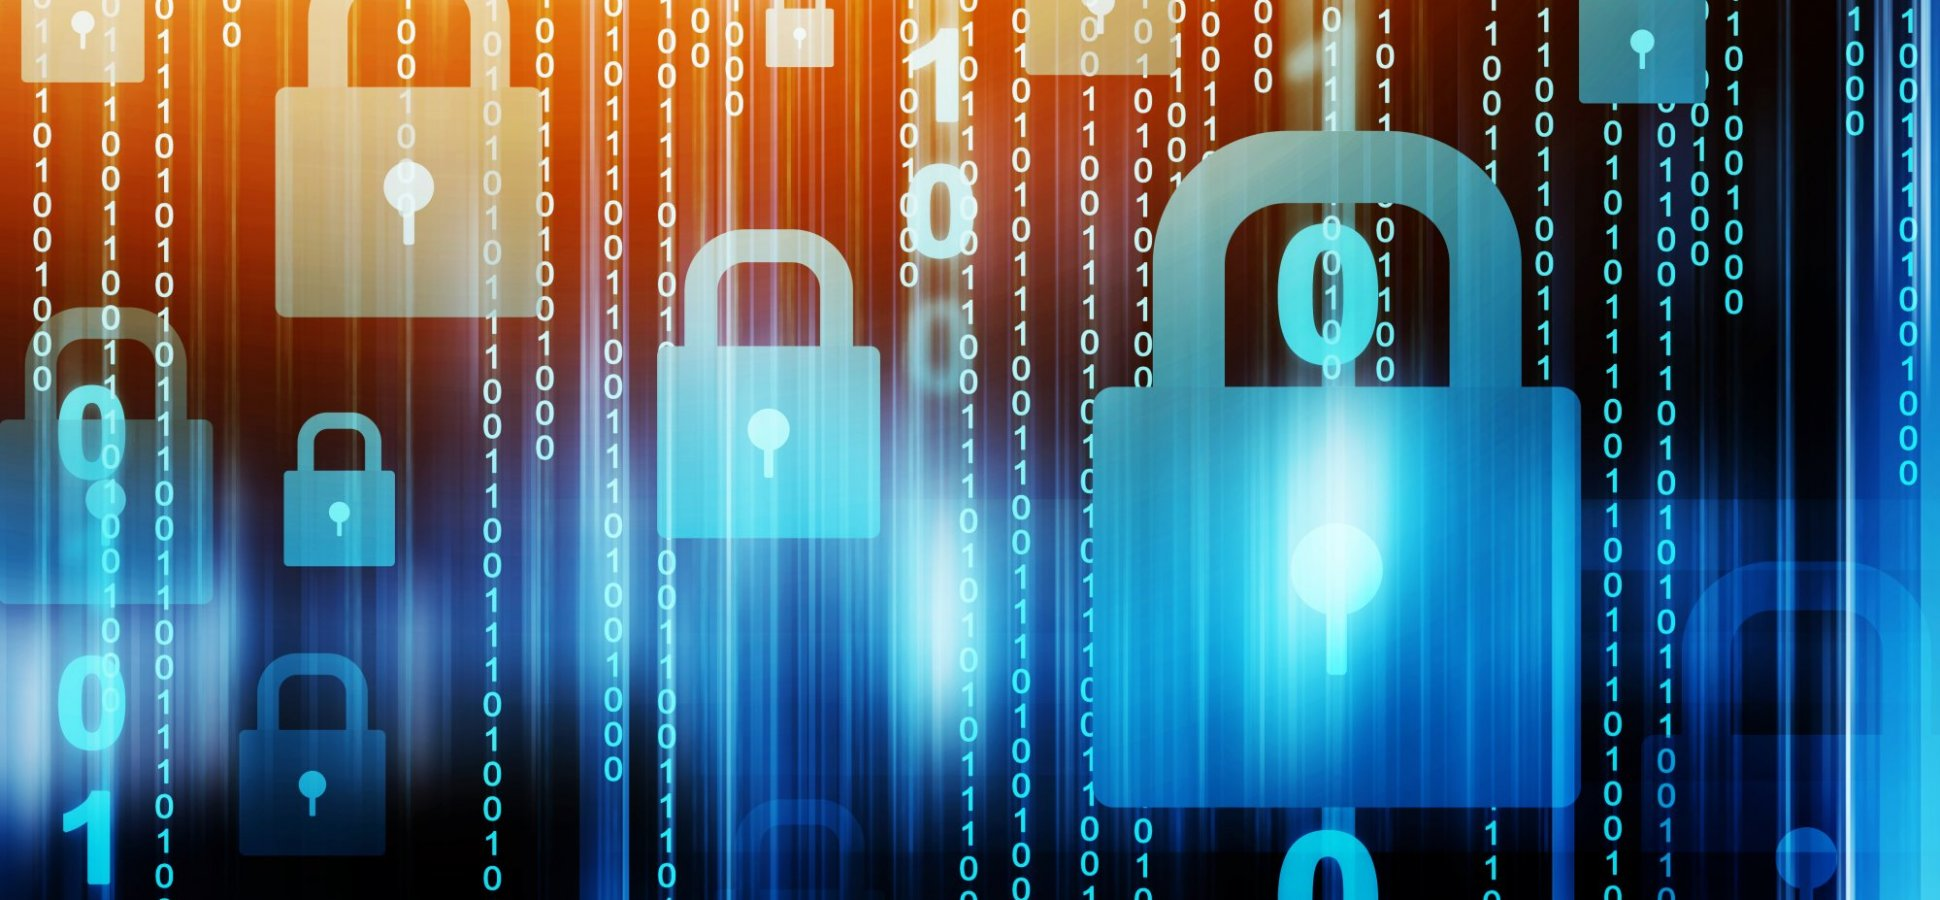 When It Comes to Getting Hacked, Assume the Worst, Now What?